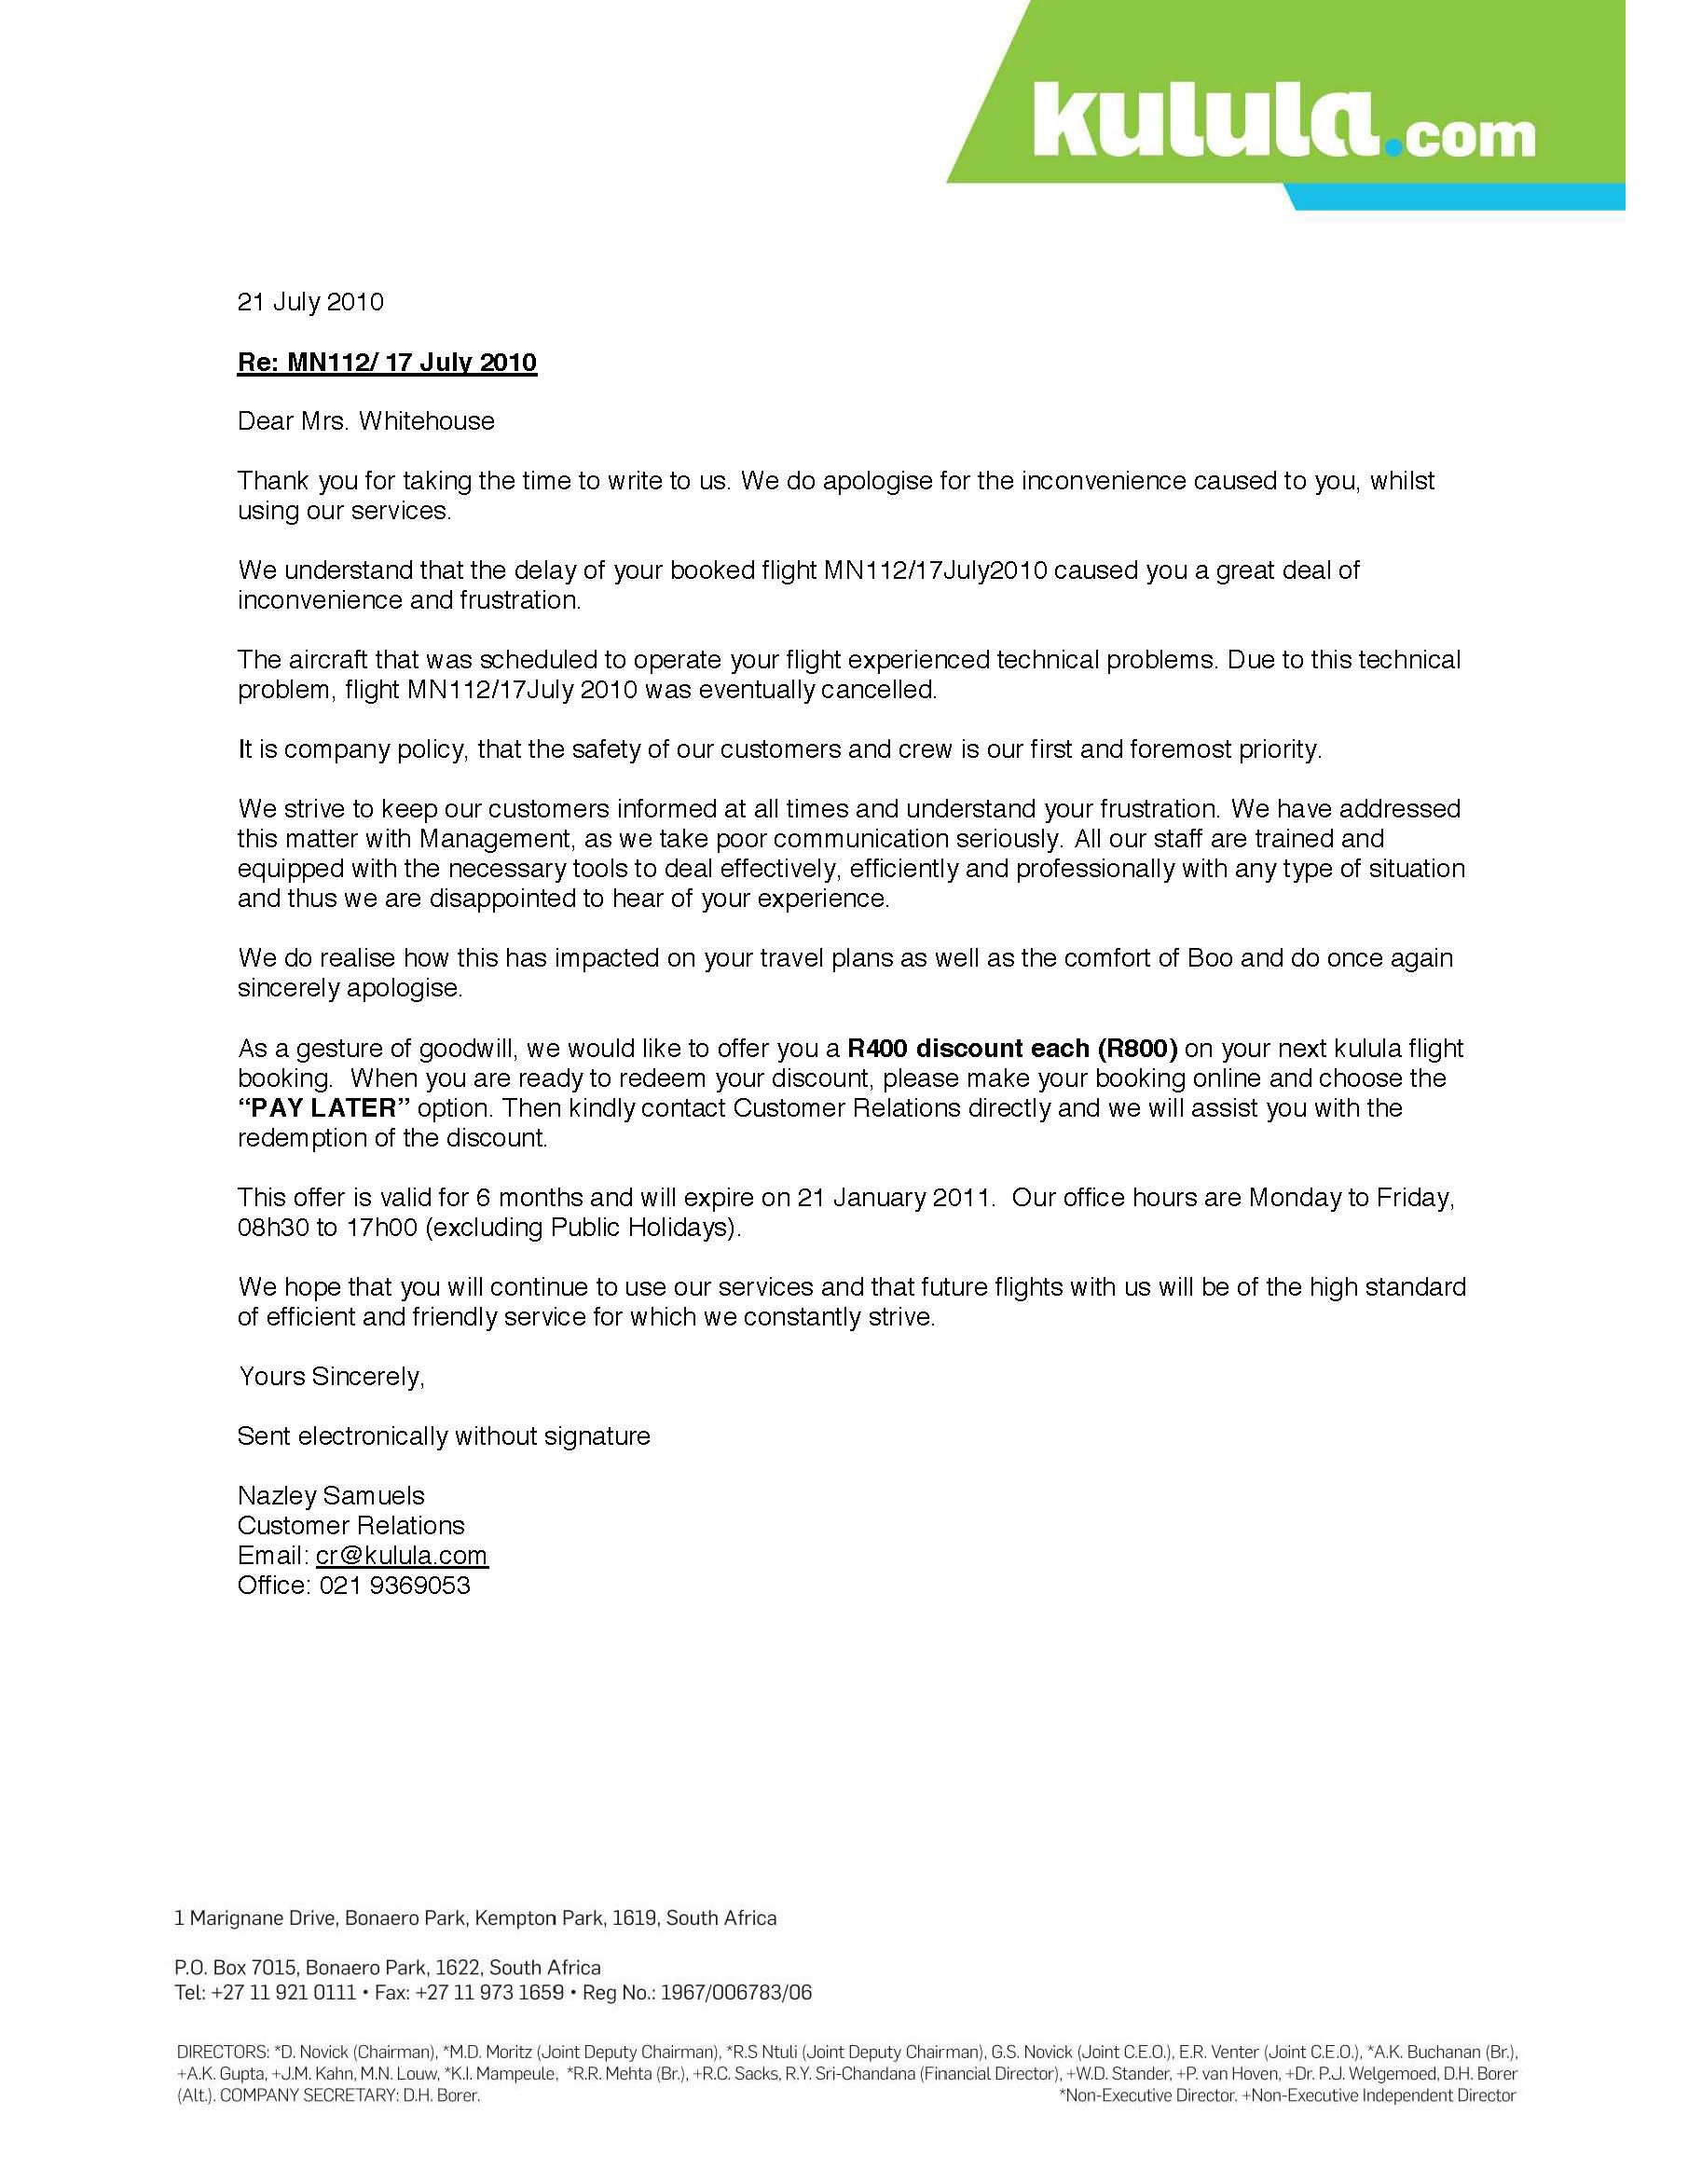 Amanda Sevasti Apology From Kululaletter Of Apology Business